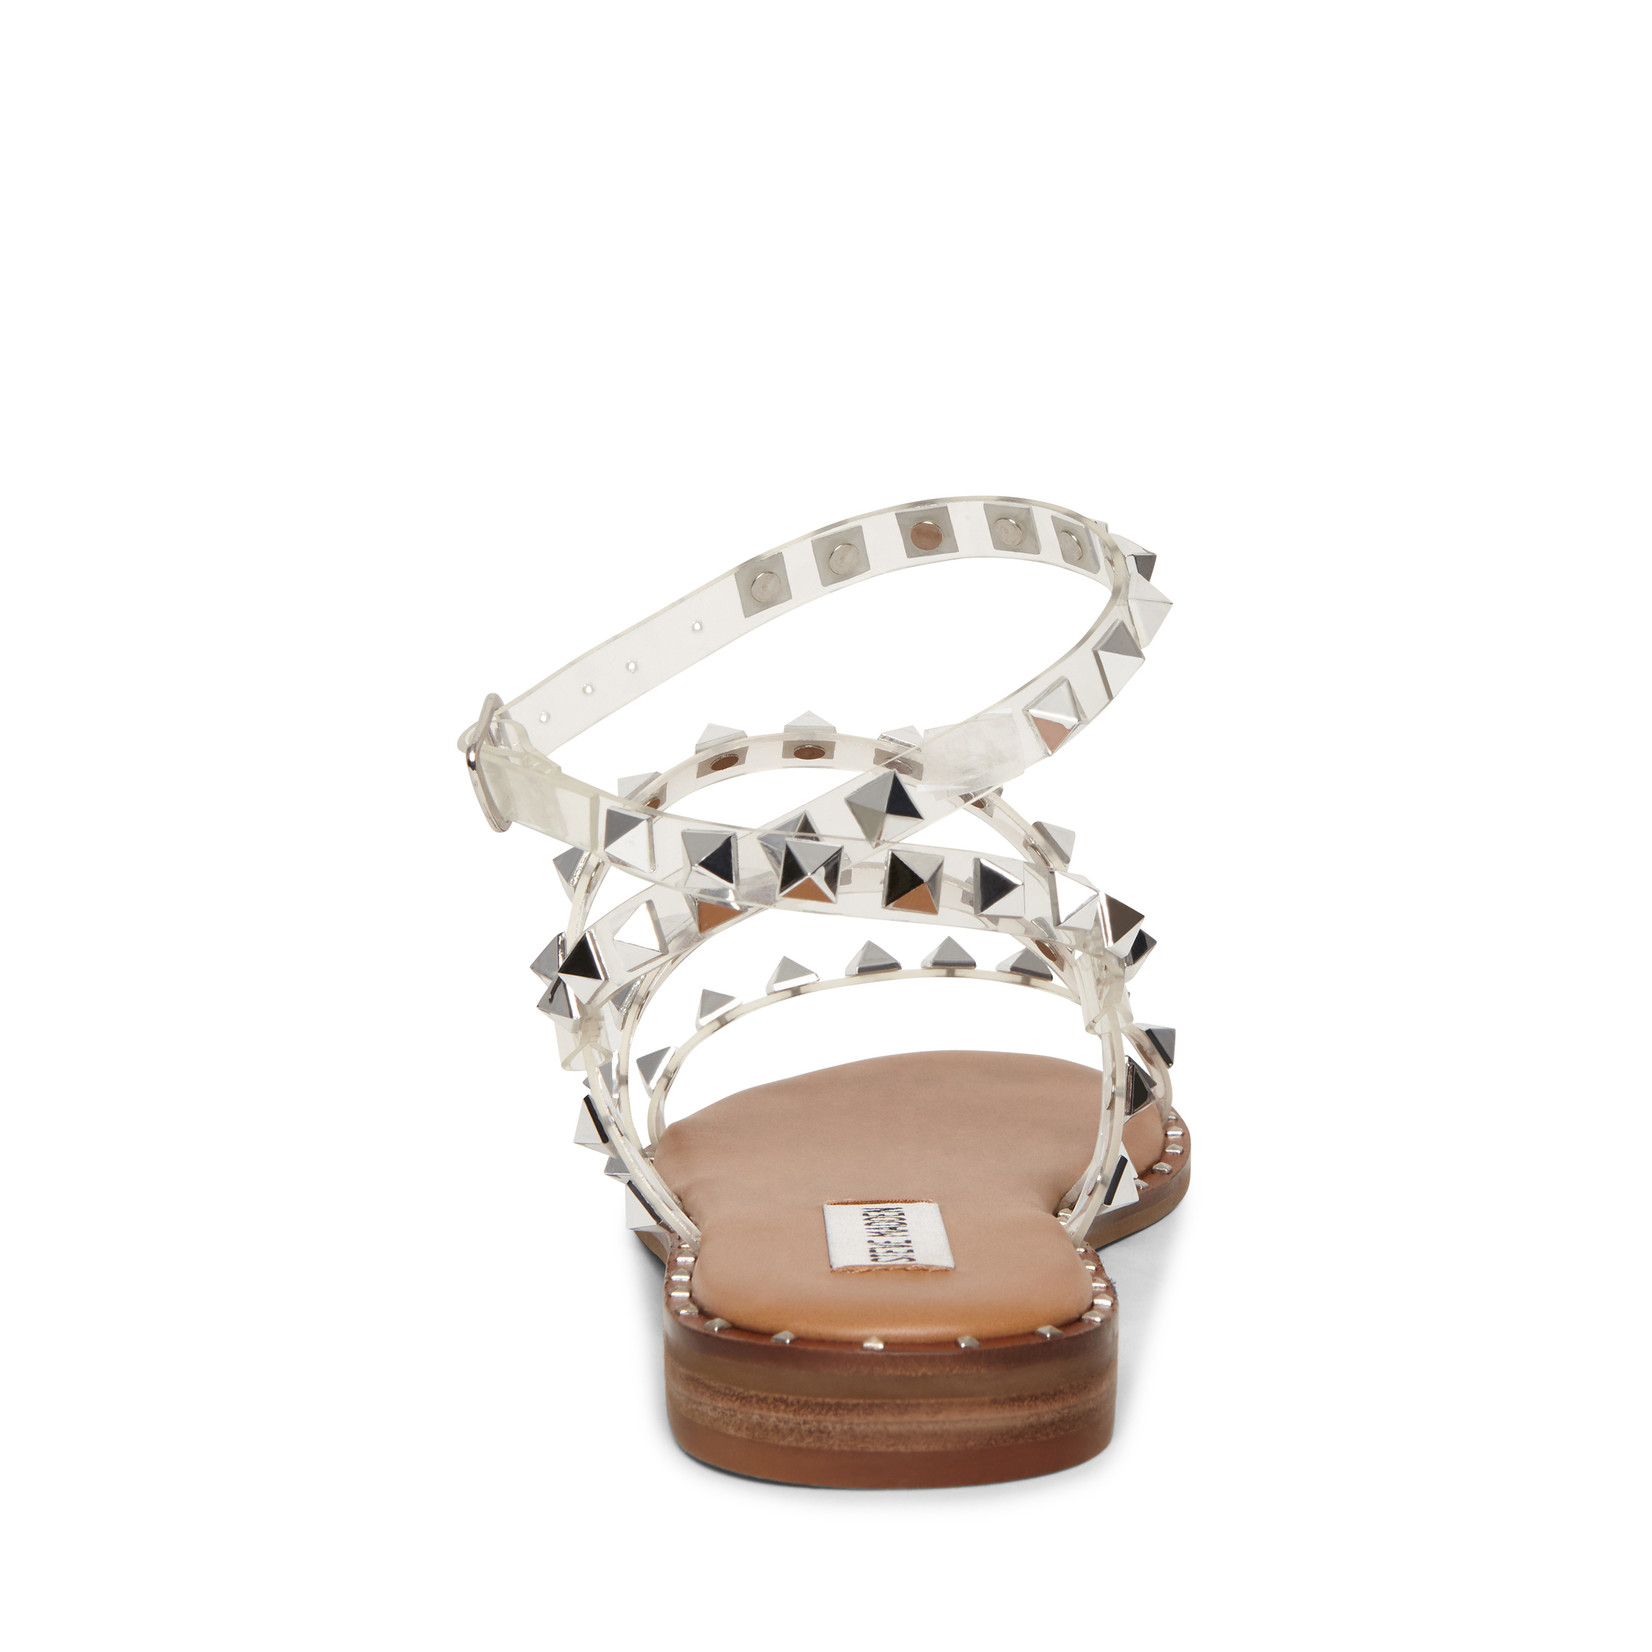 STEVE MADDEN STEVE MADDEN TRAVEL CLEAR